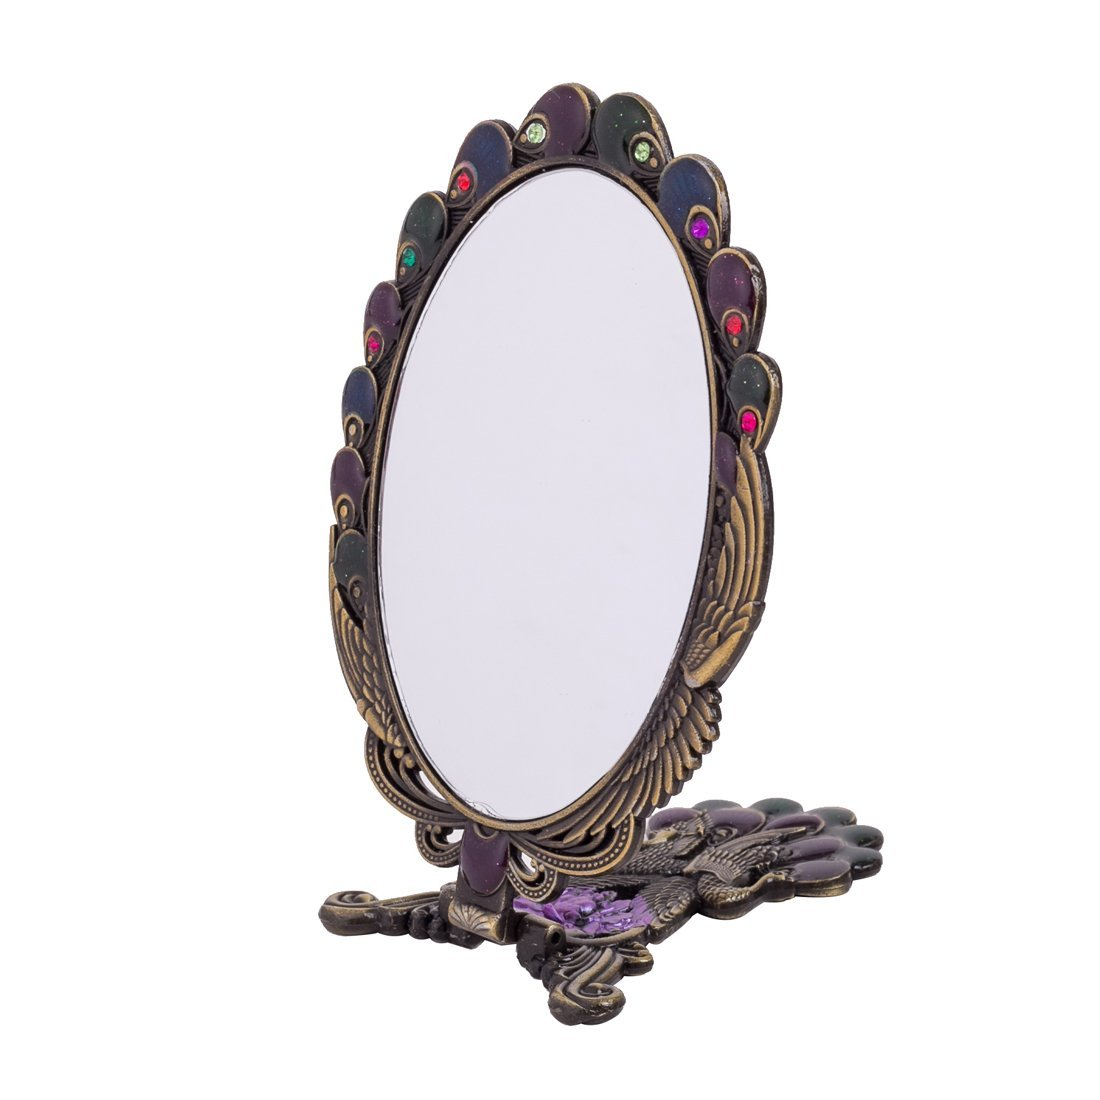 MOIOM Vintage Style Metal Foldable Oval Peacock Flower Pattern Makeup Hand/Table Mirror (Bronze) 2